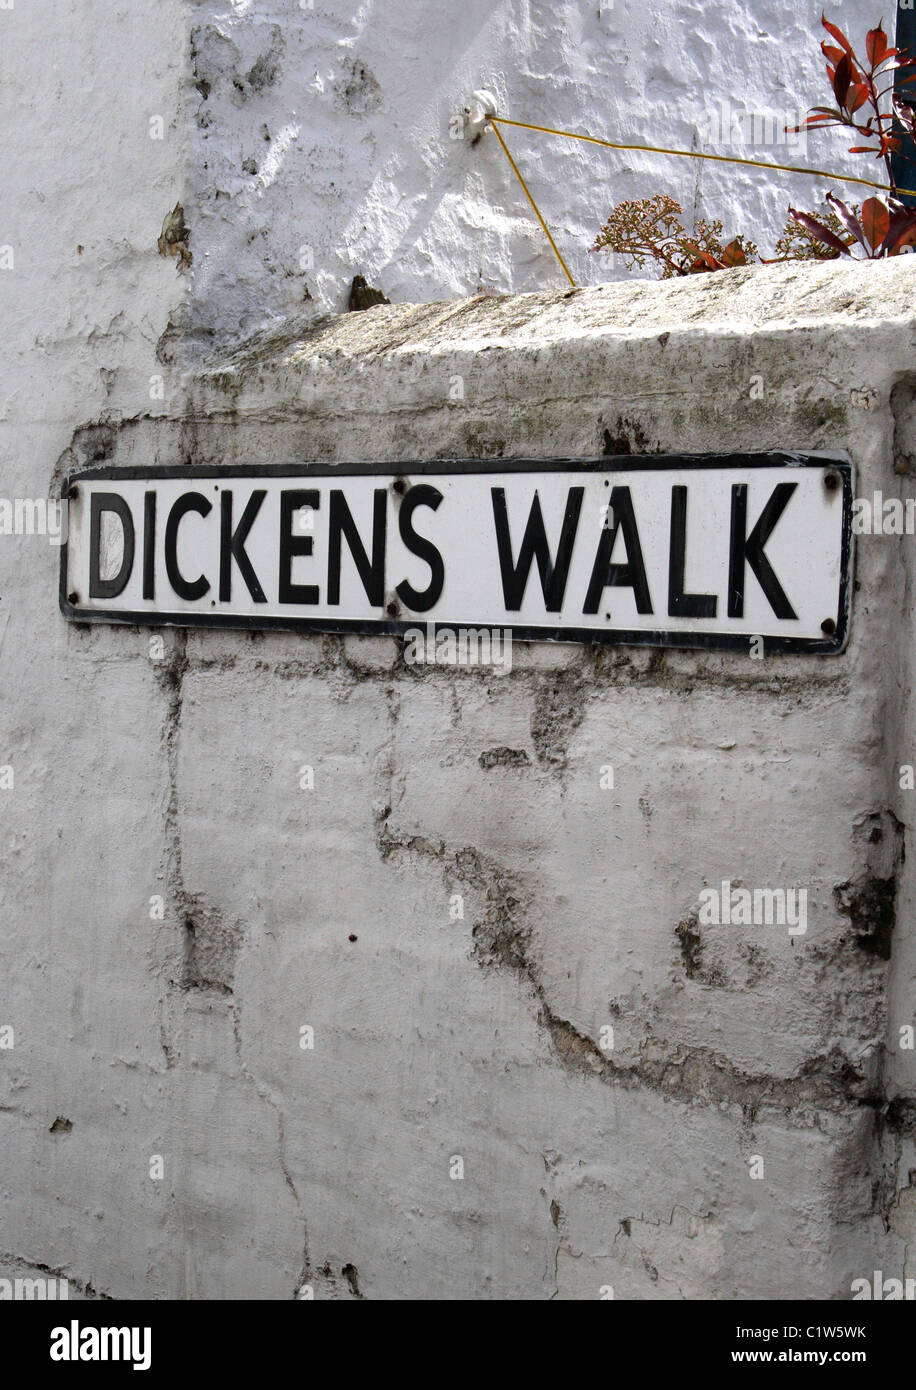 Dickens Walk, in Broadstairs, Kent in the South East of England. - Stock Image